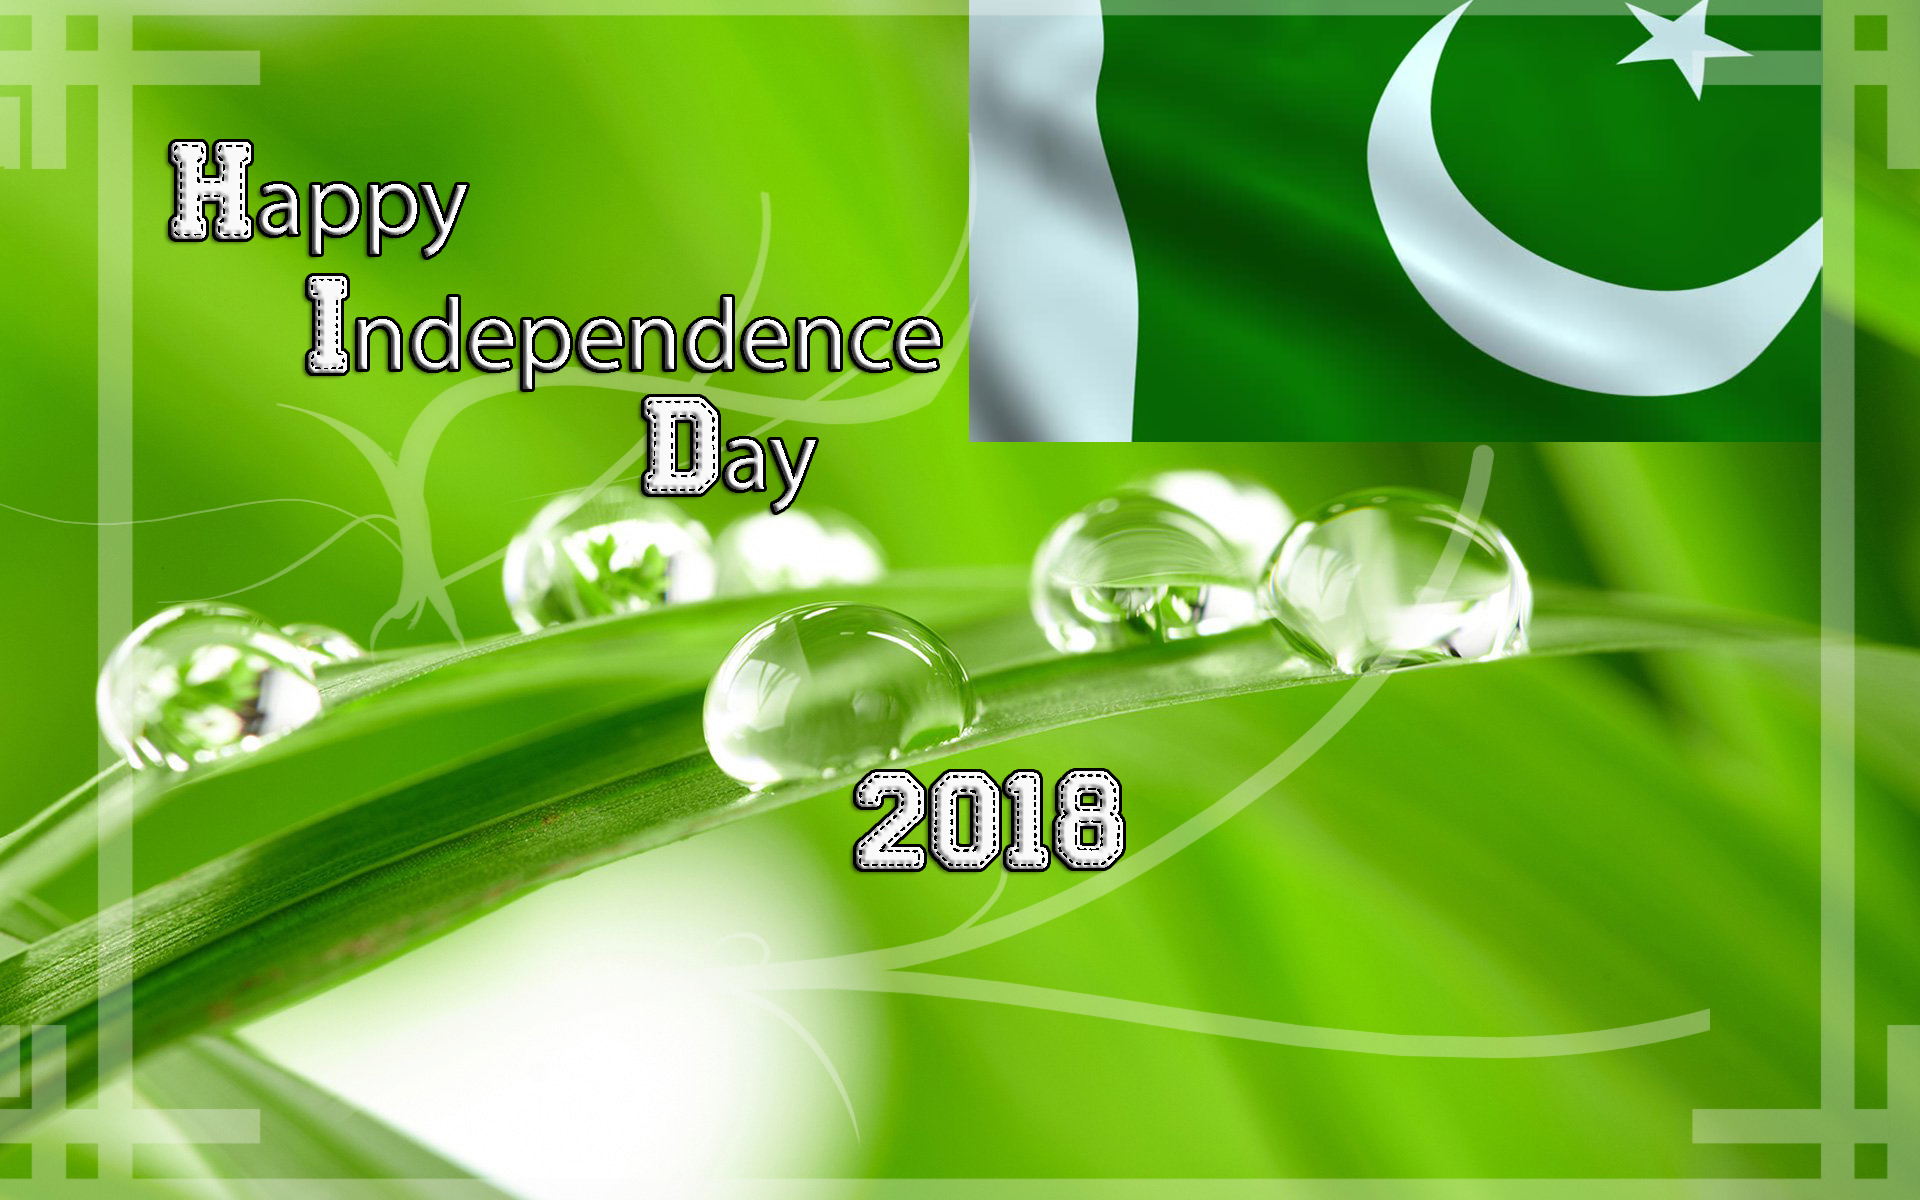 pakistan-independence-day-wallpaper-images-cards-posters